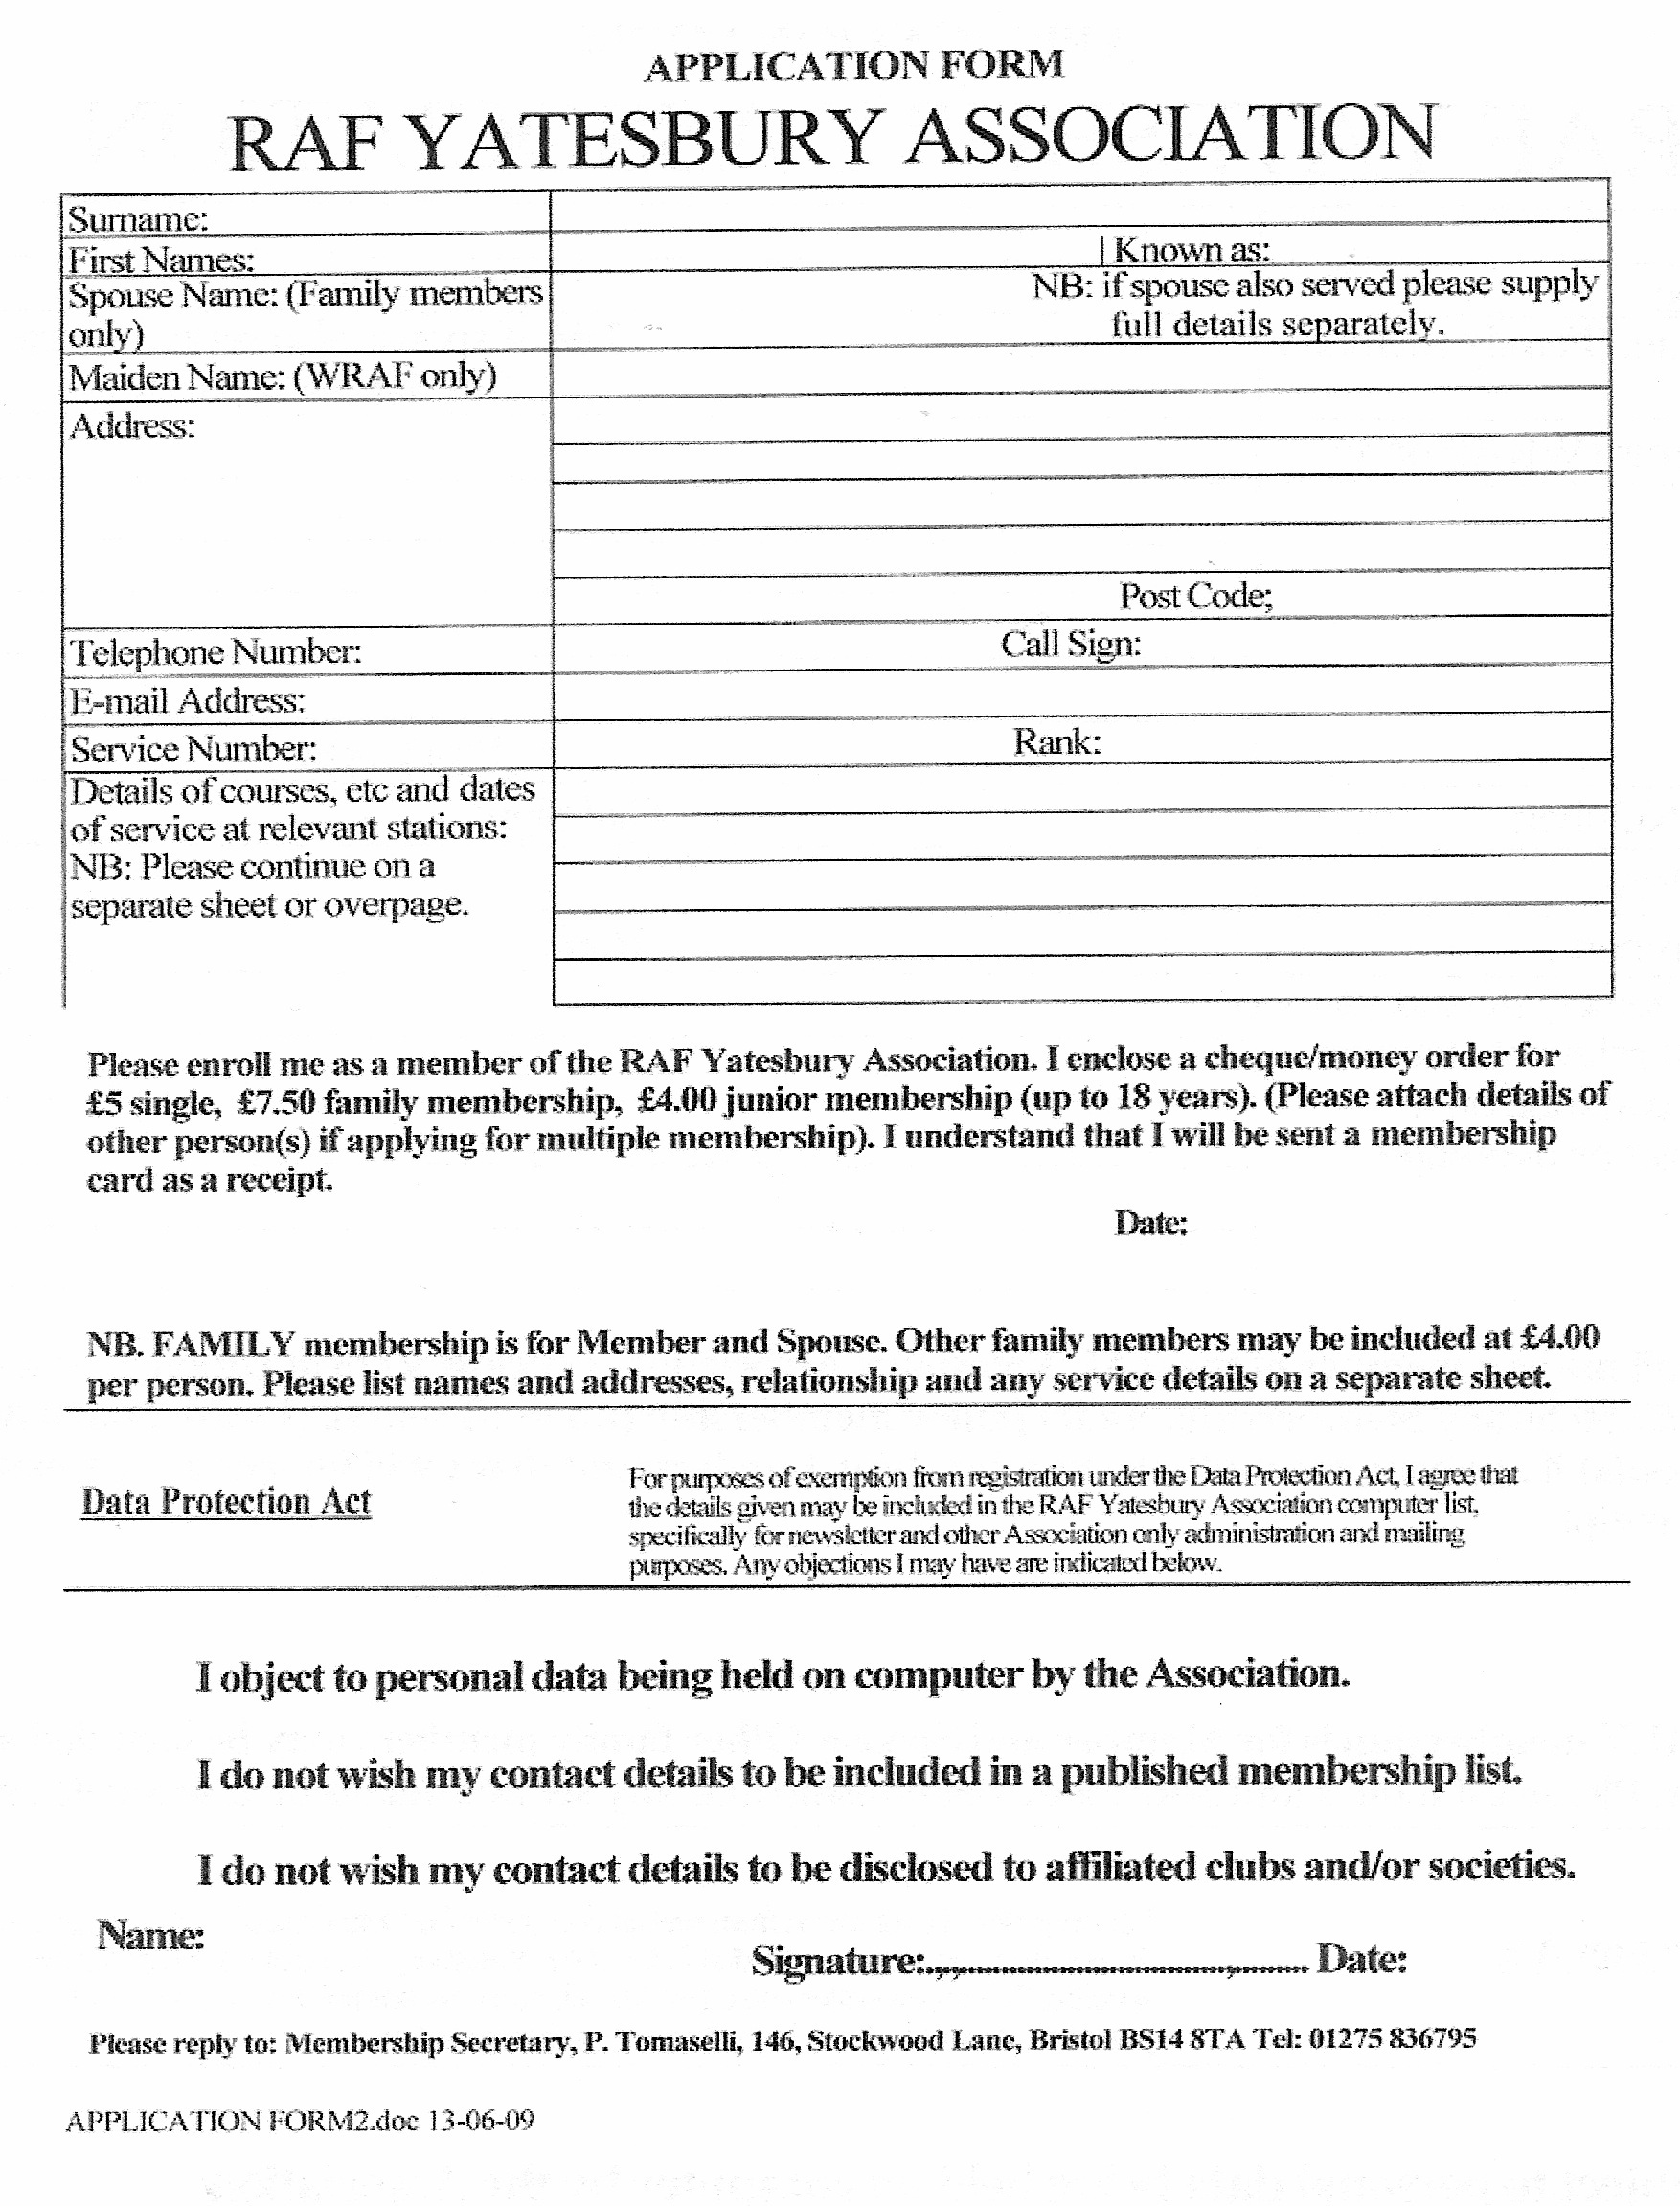 application form raf yatesbury association application form